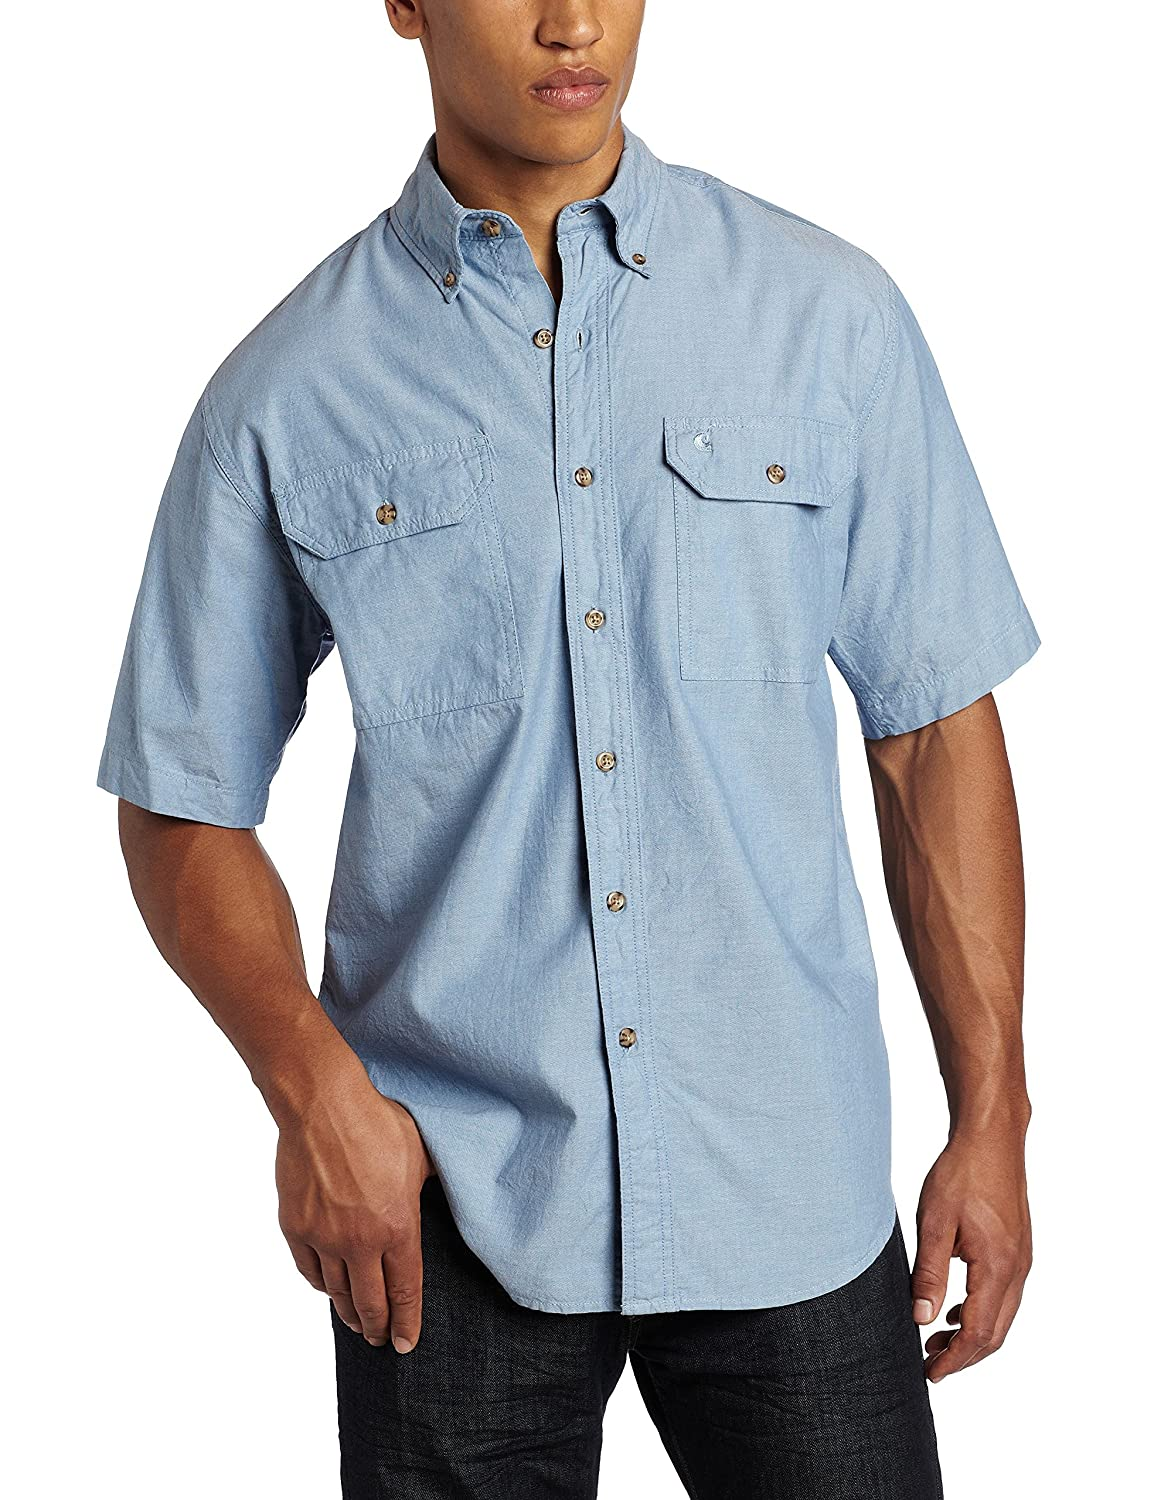 Amazon.com: Carhartt Men's Fort Short-Sleeve Shirt Lightweight ...